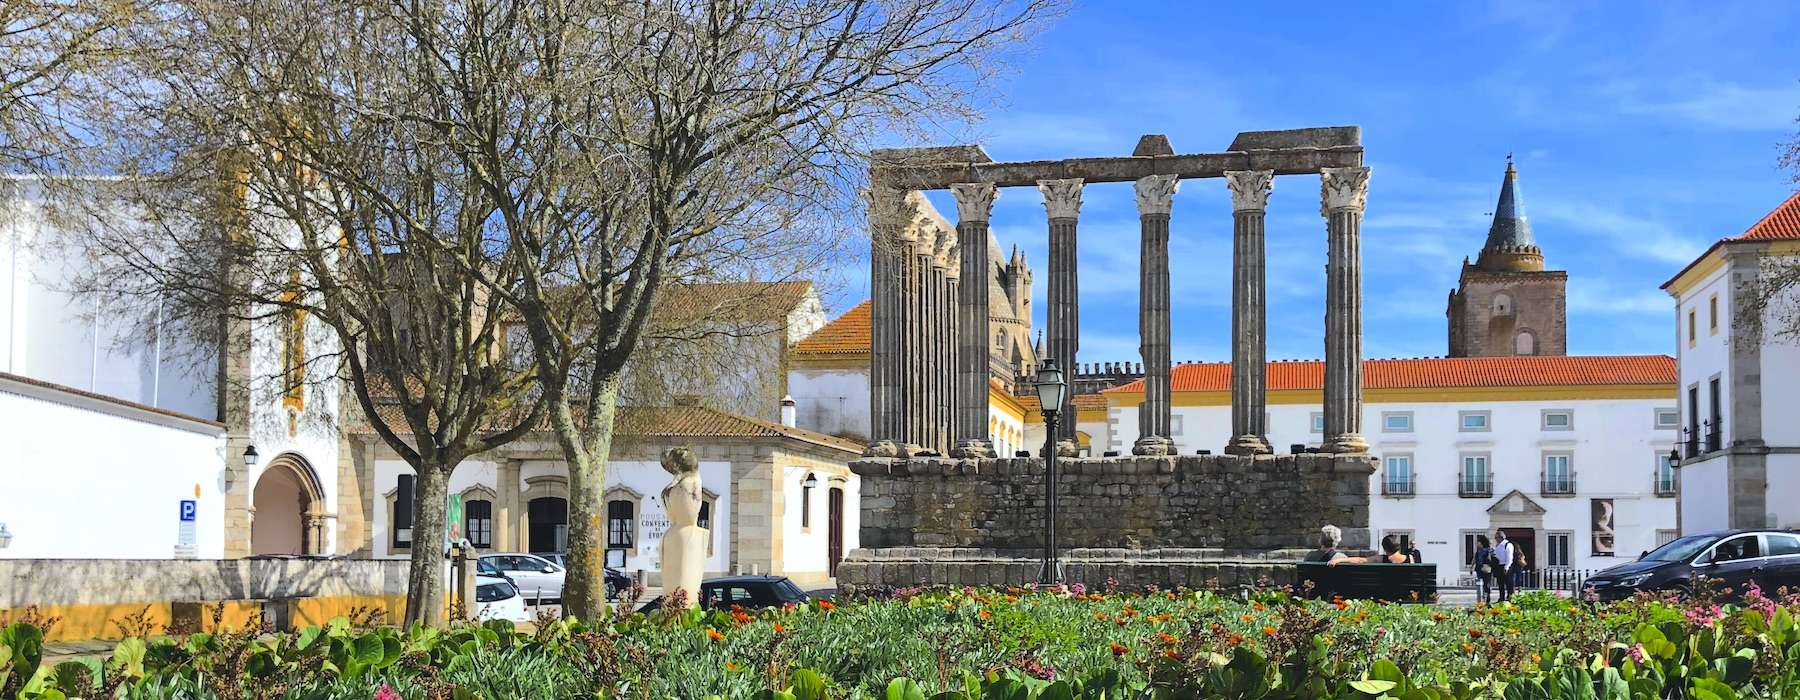 Evora Roman Temple and cathedral tower